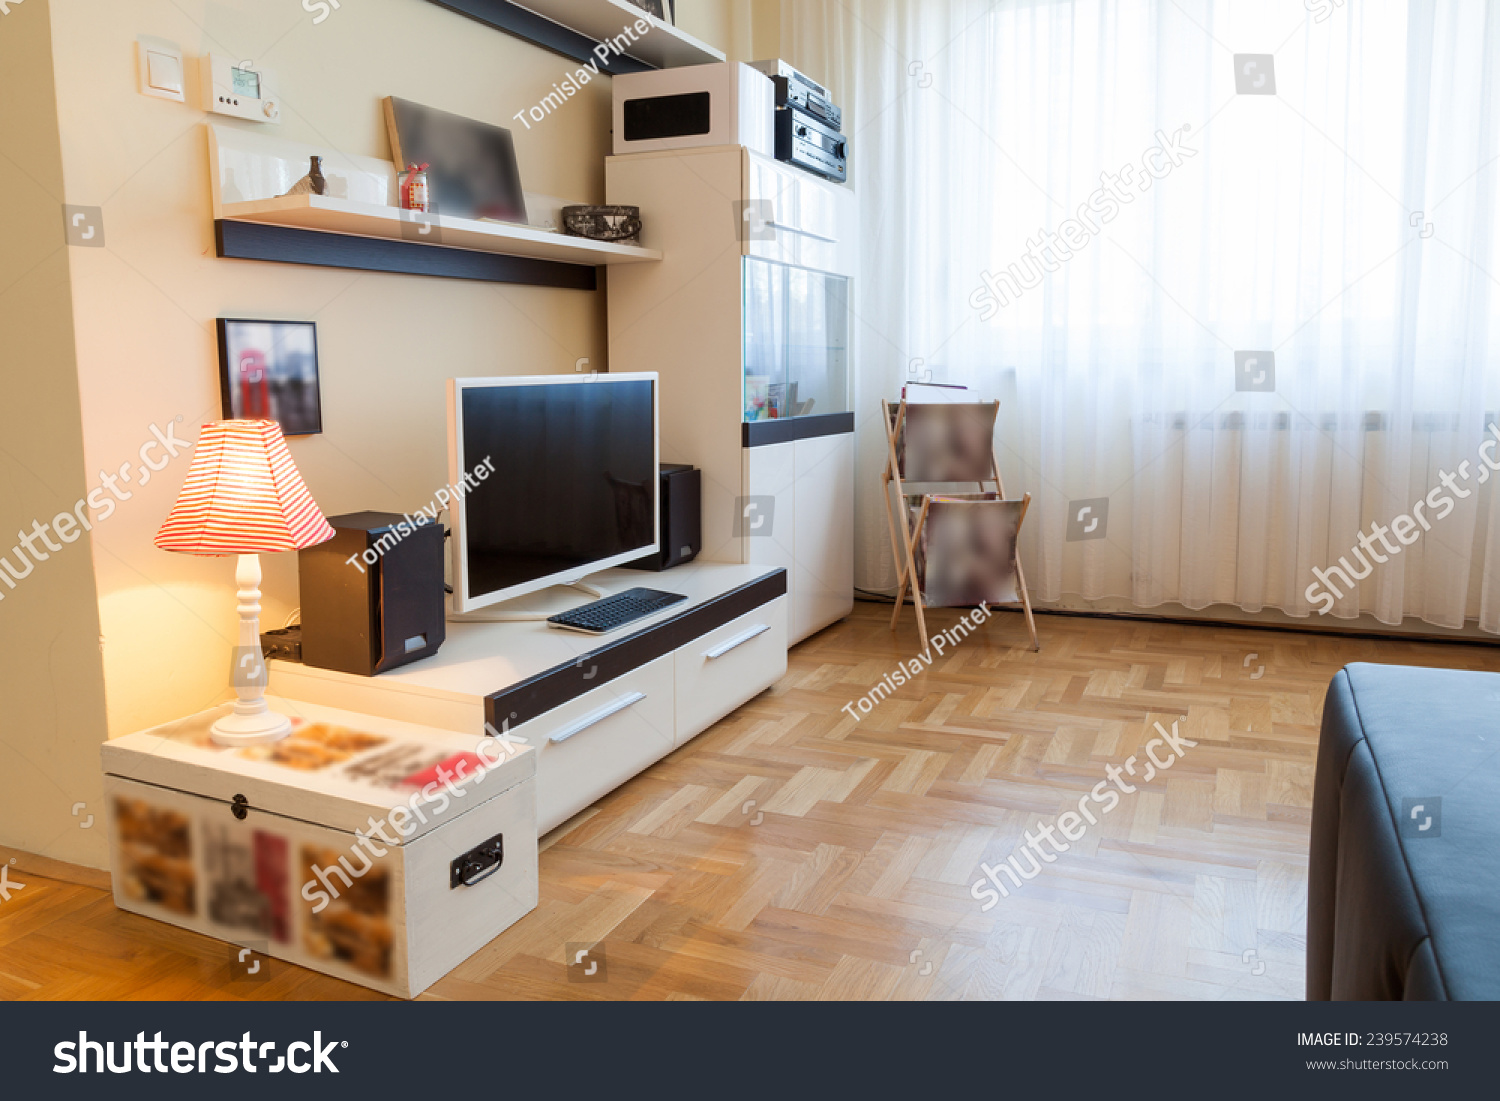 Modern Living Room Tv And Speakers Ambient Light Enhanced Colors Stock Photo 239574238